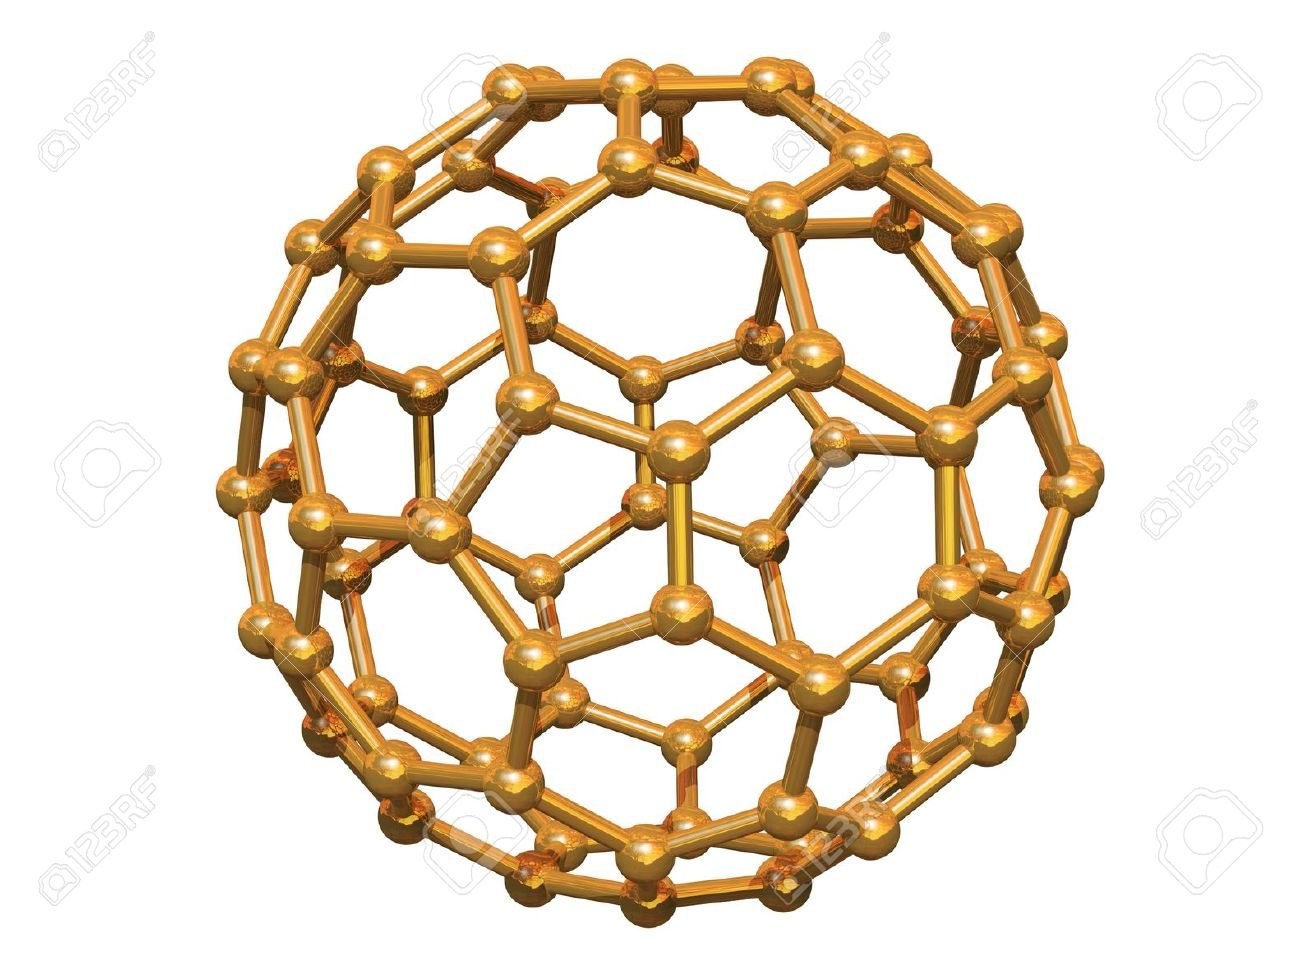 Fullerene Stock Photos & Pictures. Royalty Free Fullerene Images ...